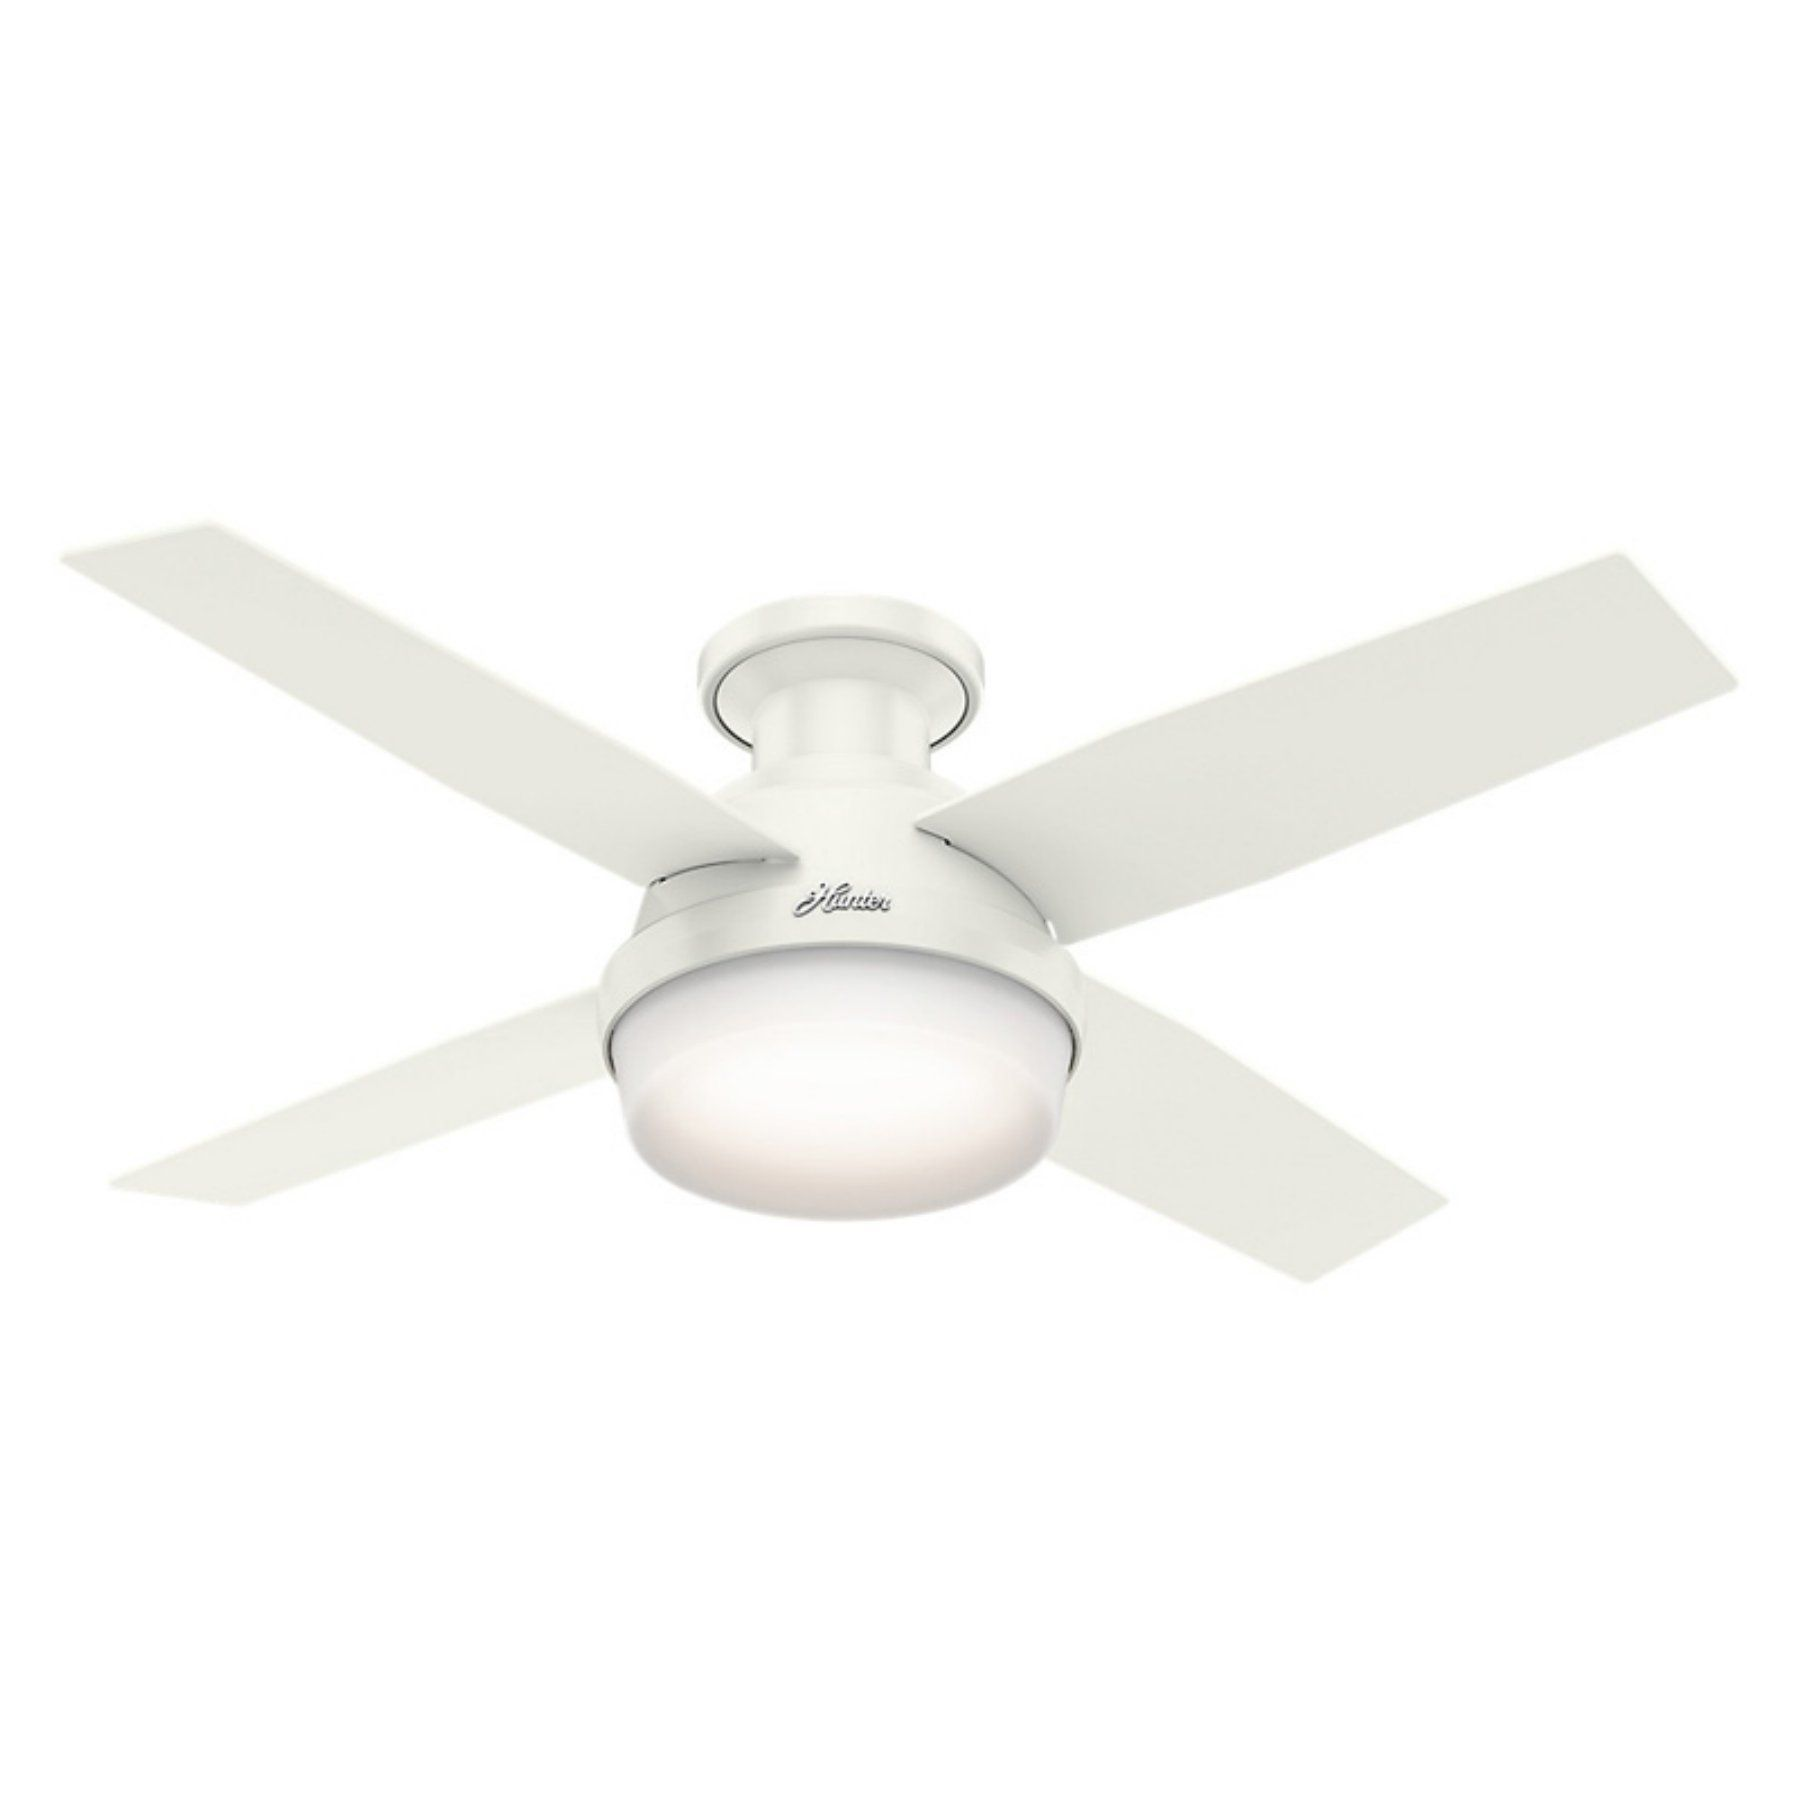 Hunter dempsey in low profile indoor ceiling fan with light and